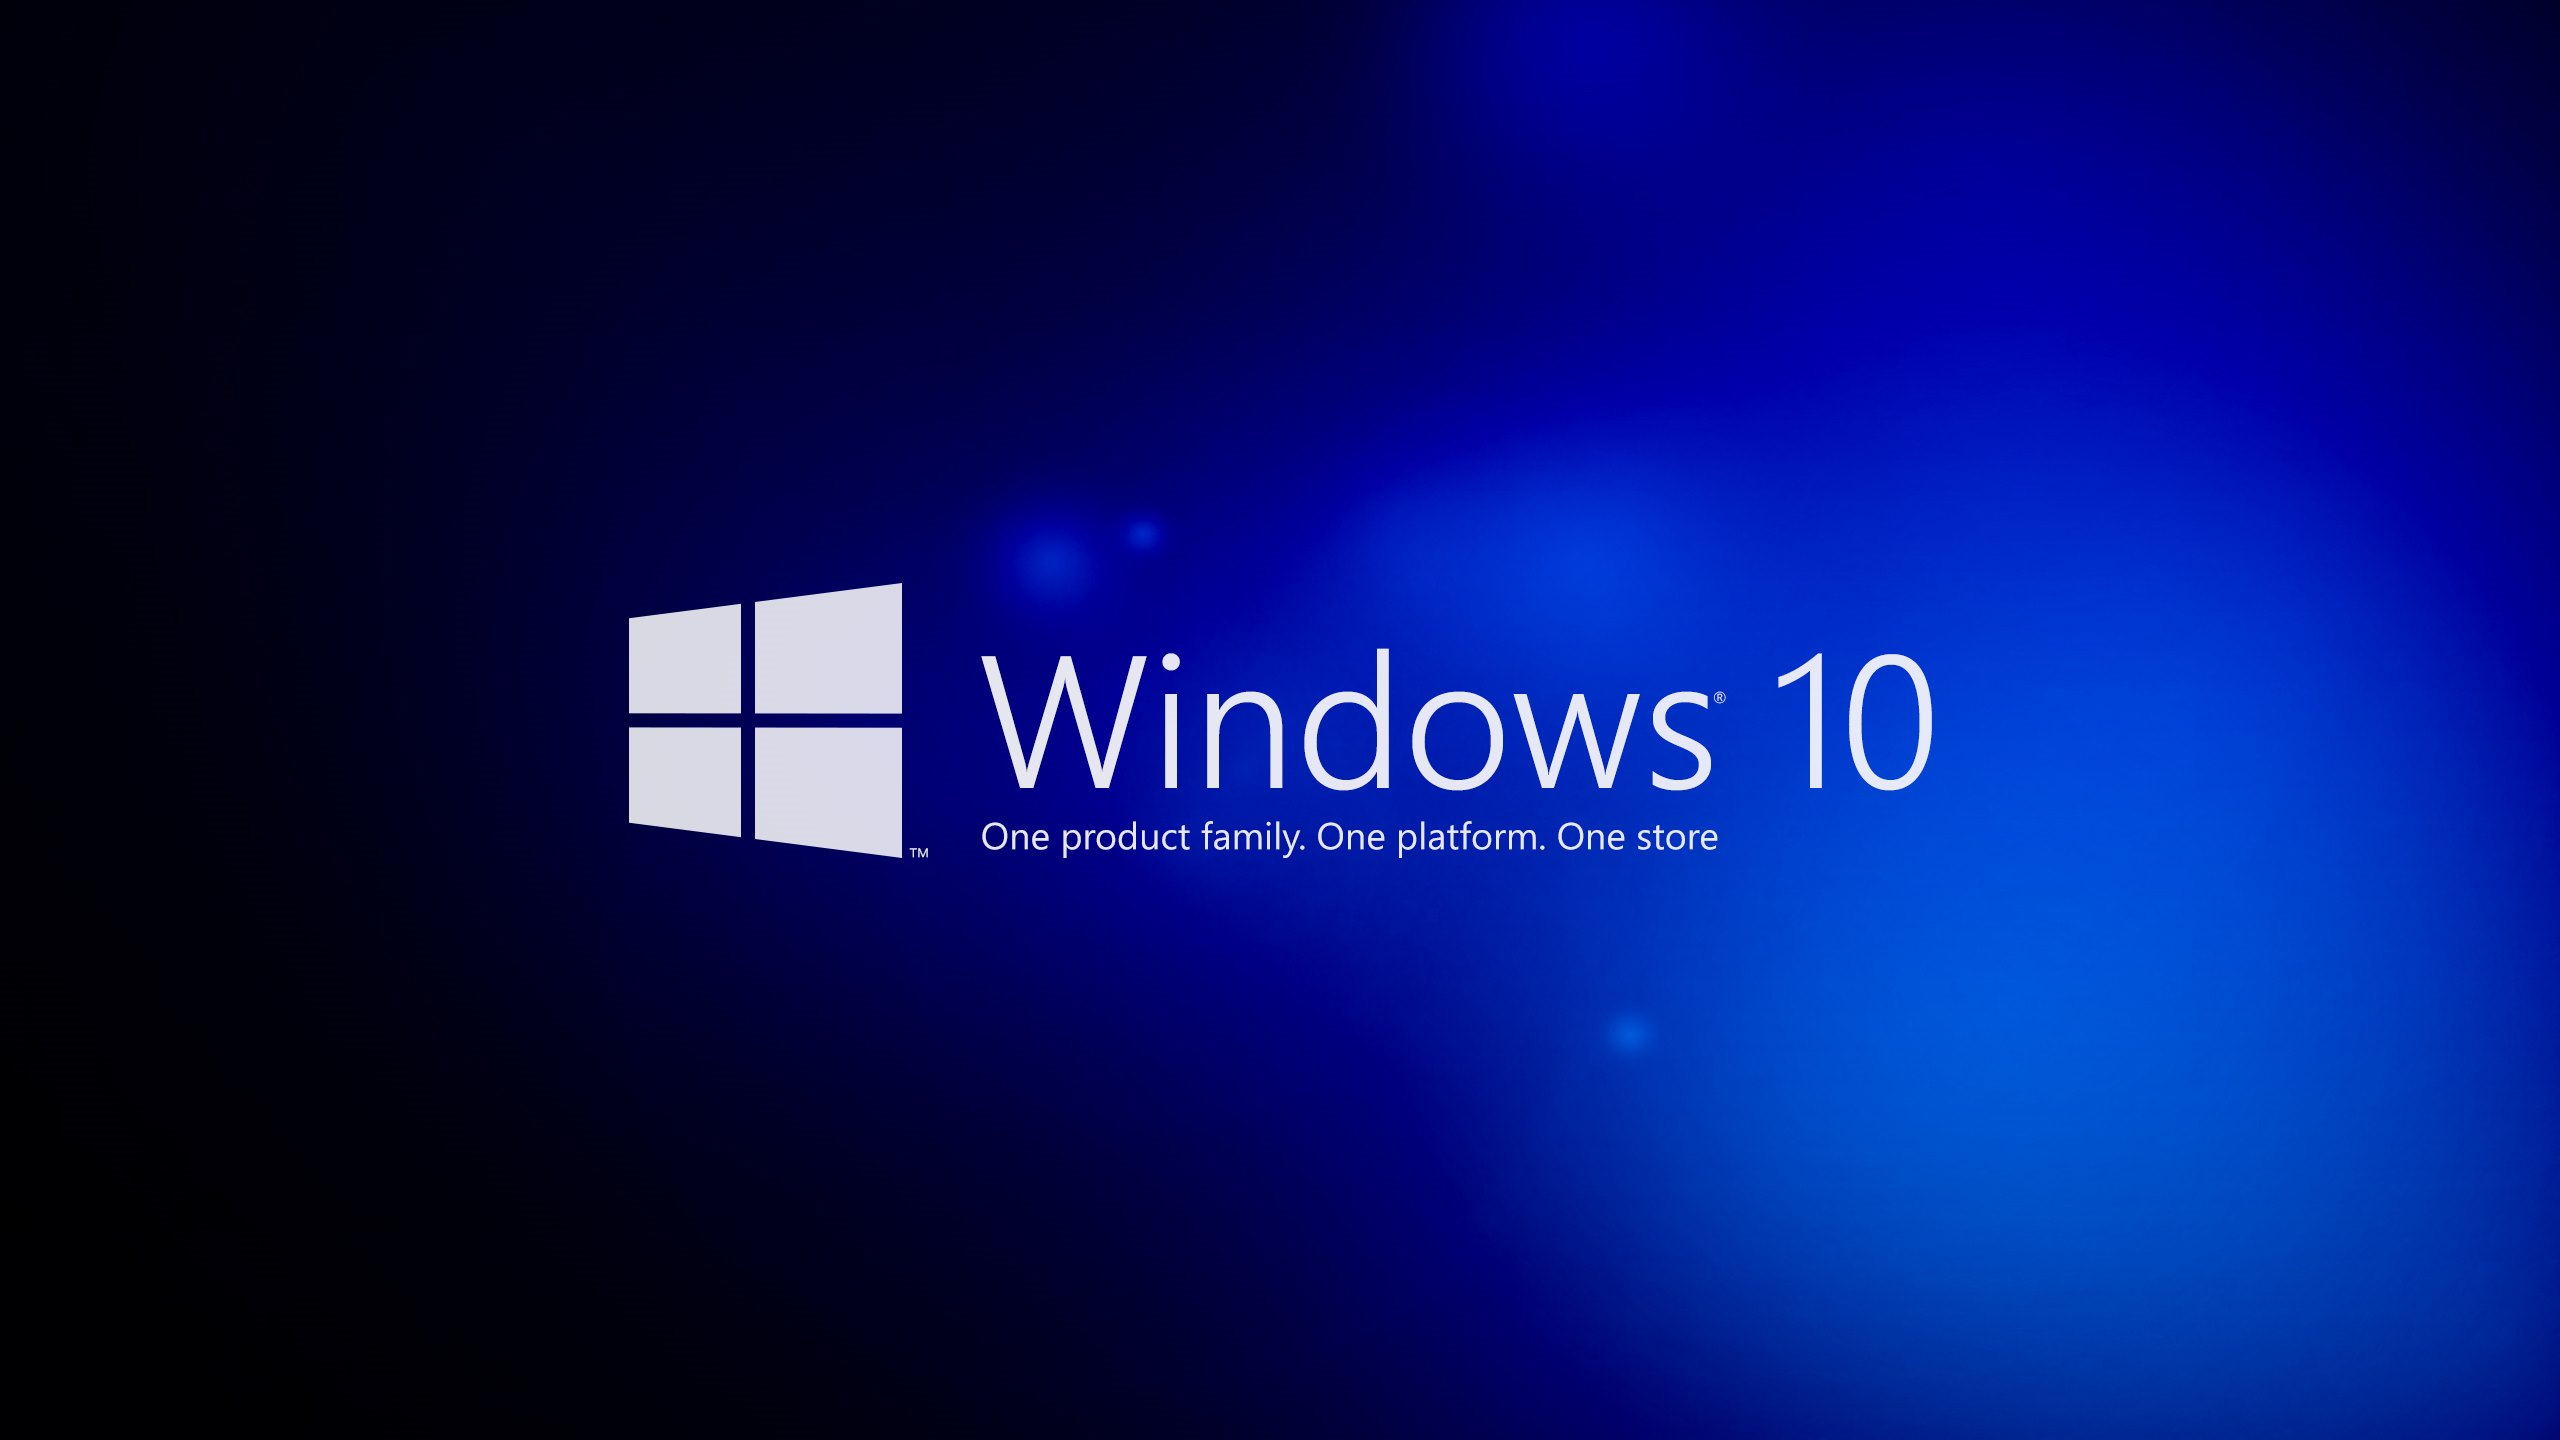 Don't Delay....You Can Get A Free Upgrade To Windows 10 Before June 1, 2016